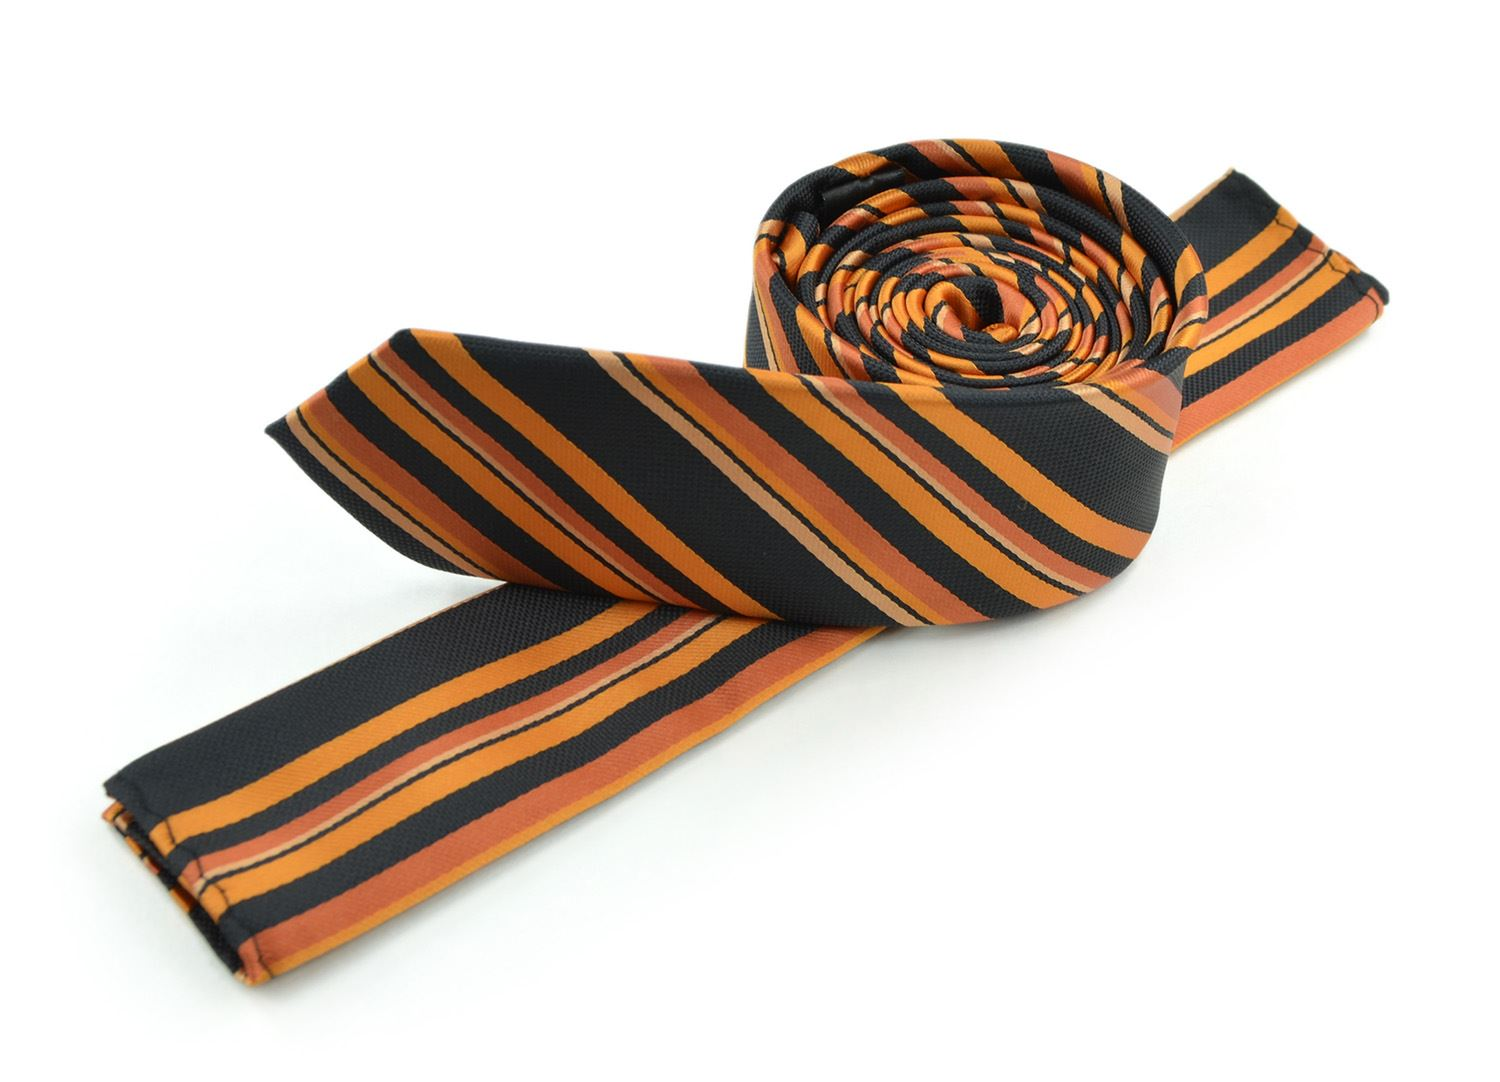 Moda Di Raza Men's Multi Striped Skinny Trendy Imported Modern Fashion Necktie-Orange